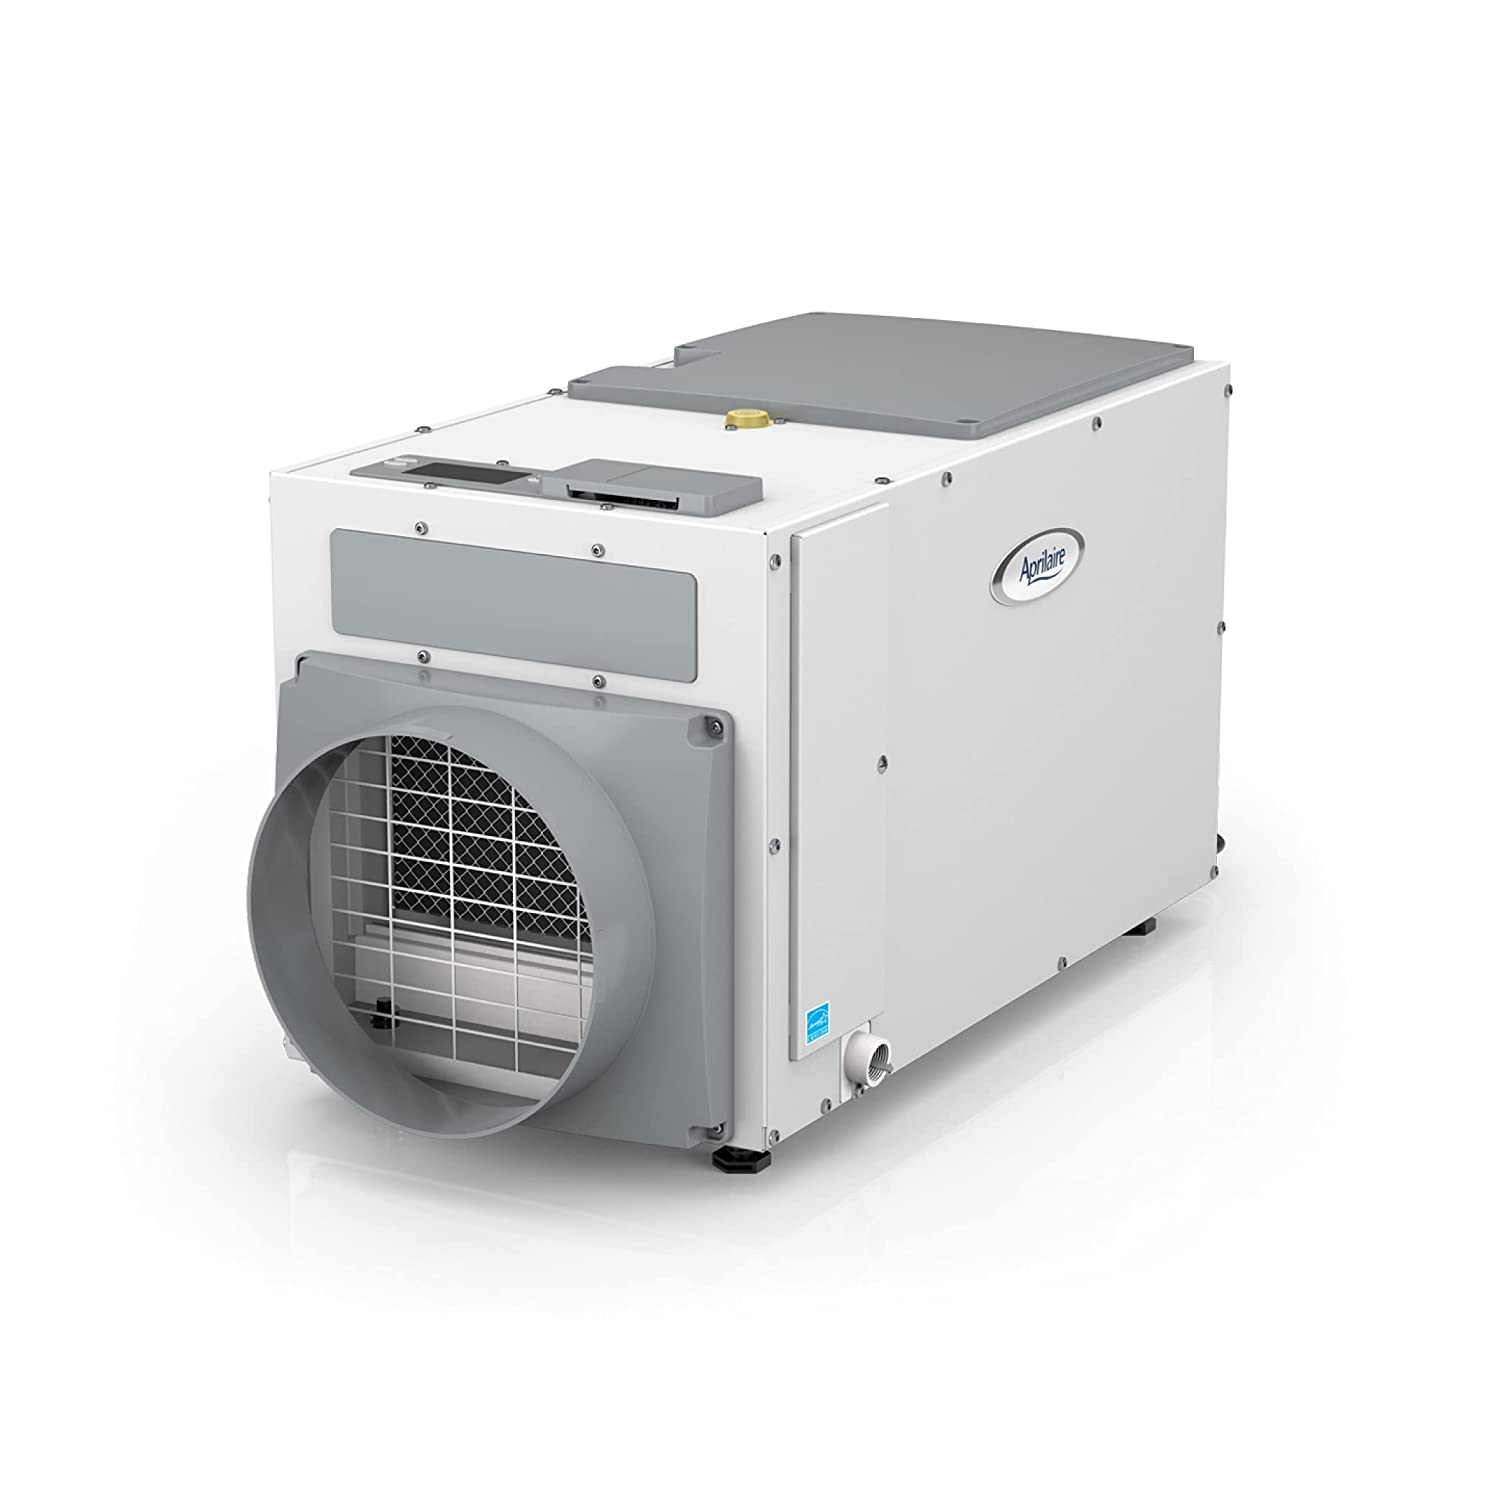 Aprilaire E100 Pro 100 Pint Crawl Basem for Dehumidifier All stores are sold Spaces Choice